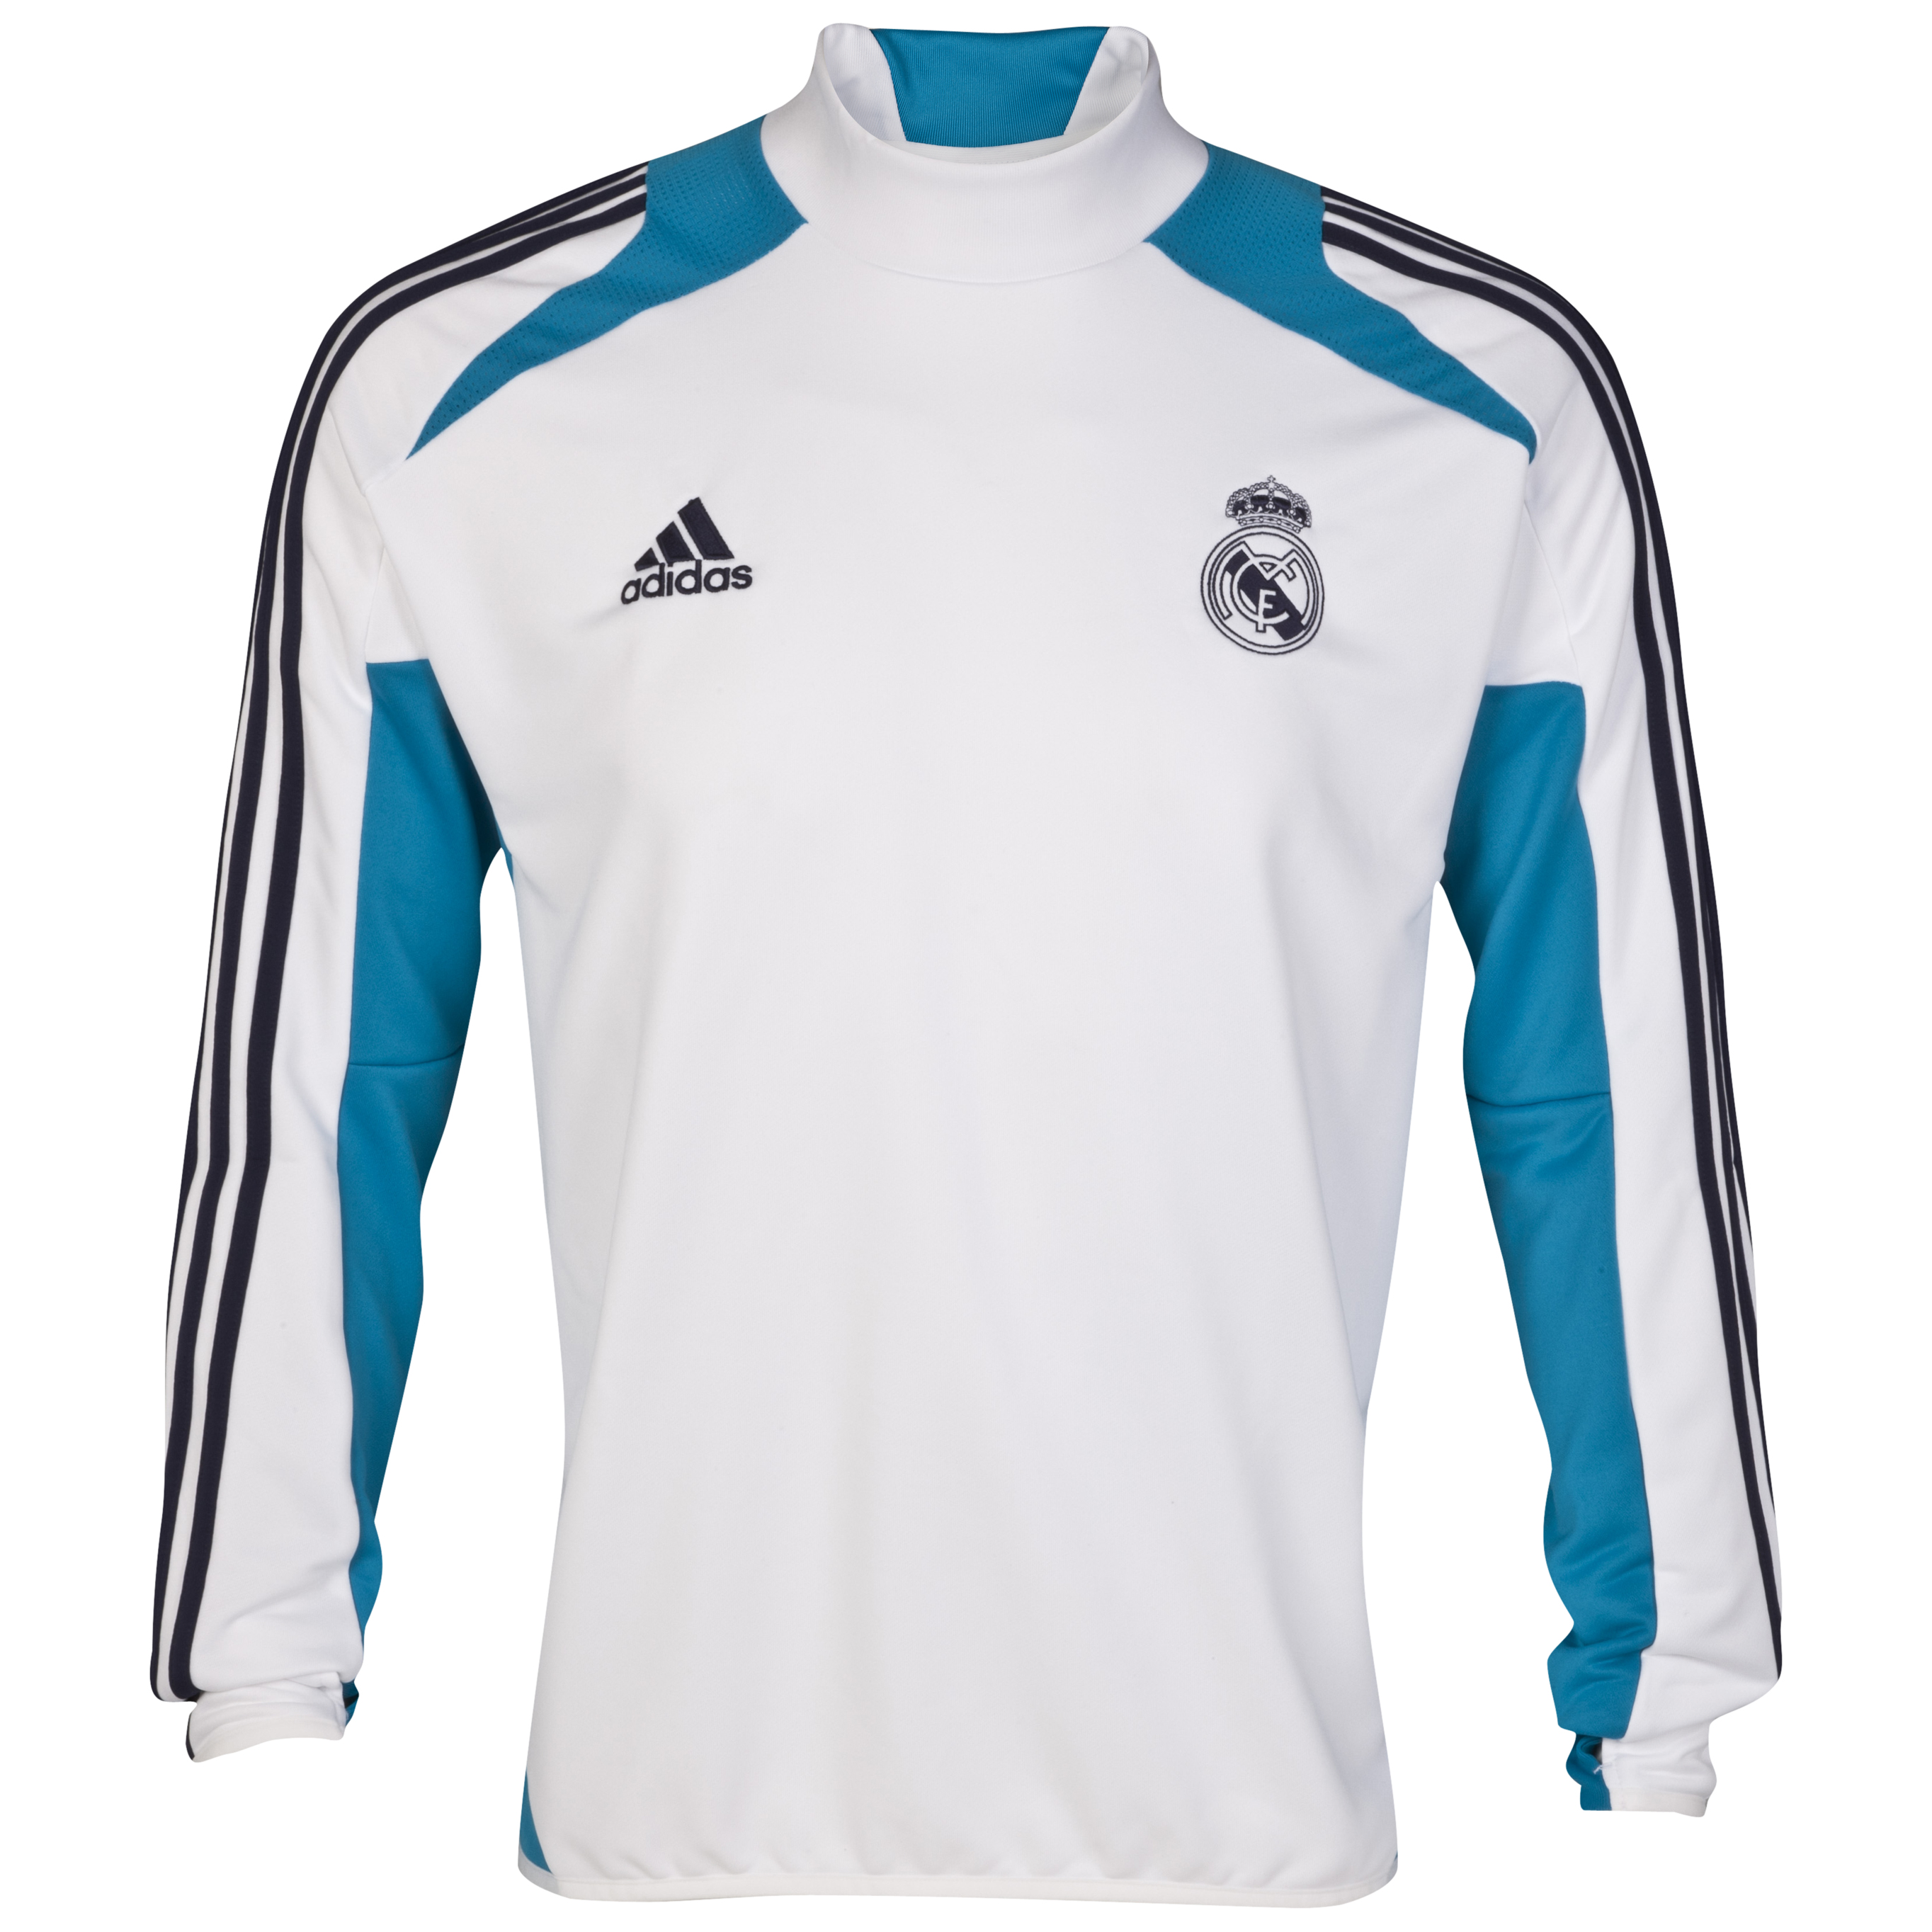 Real Madrid Training Top - White/Turquoise